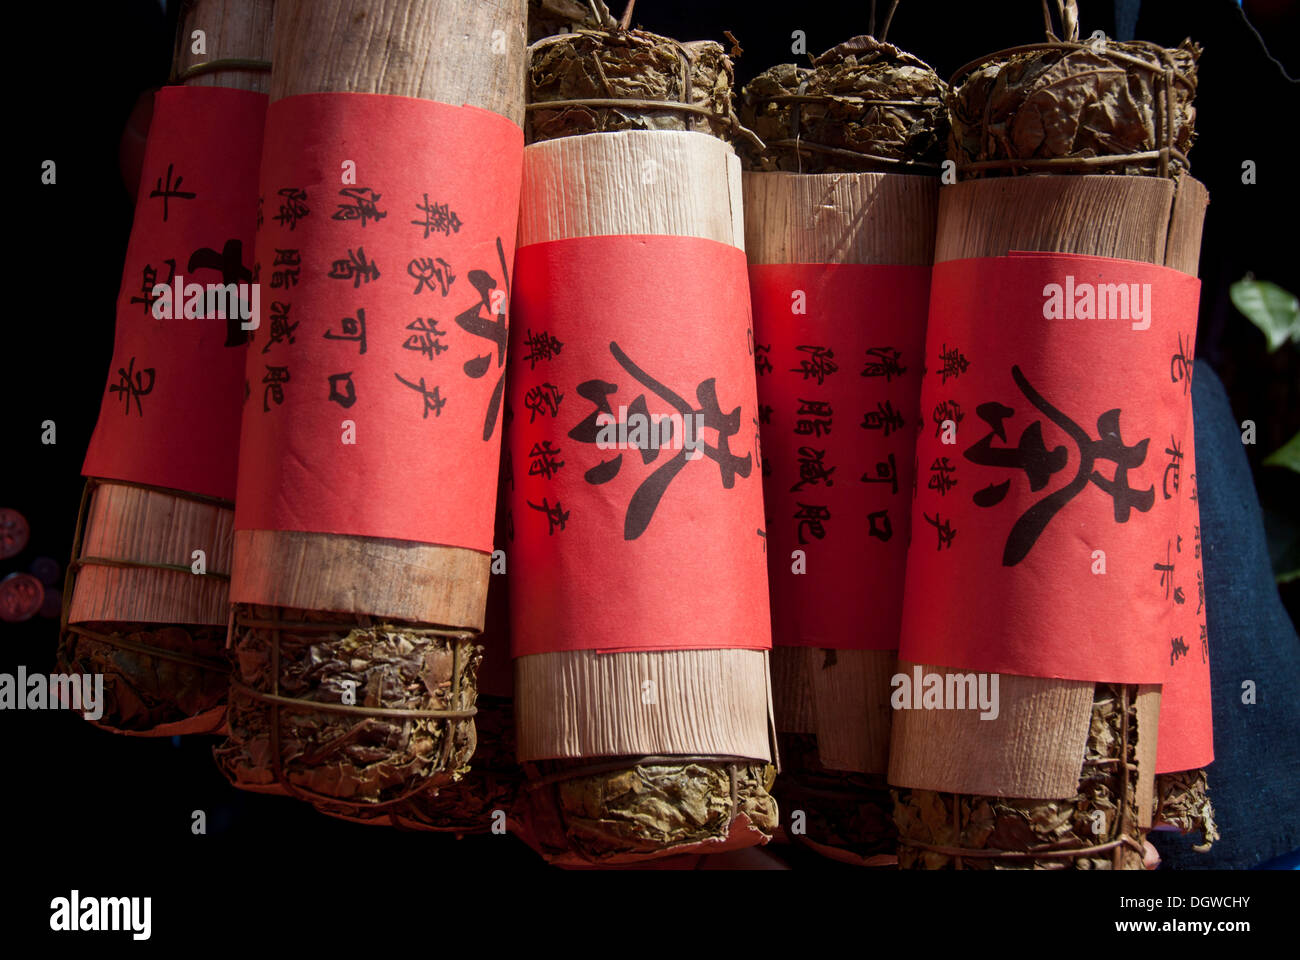 Green tea, compressed tea leaves wrapped in a red band with Chinese writing, Jiangcheng, Pu'er City, Yunnan Province - Stock Image